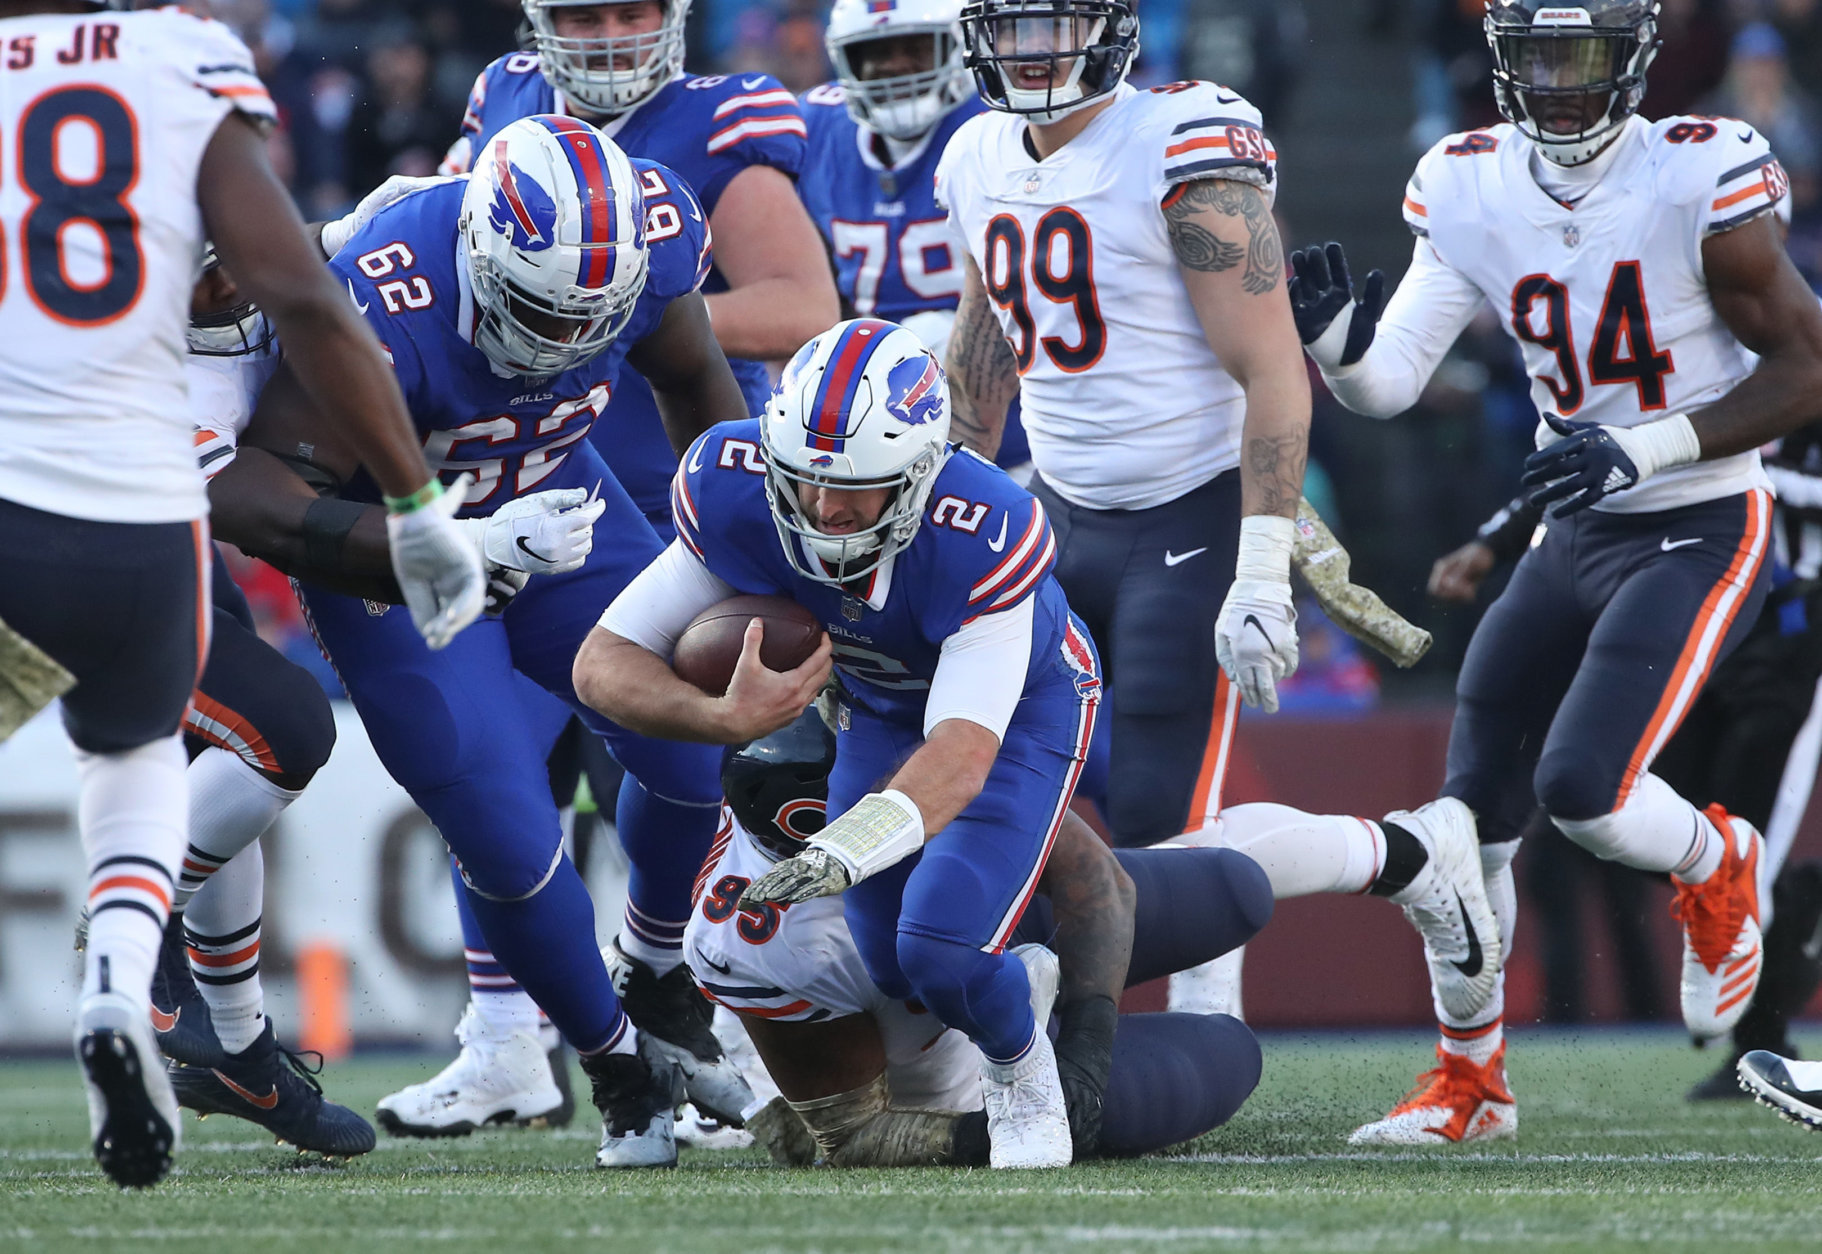 BUFFALO, NY - NOVEMBER 04: Nathan Peterman #2 of the Buffalo Bills is tackled as he runs with the ball by Roy Robertson-Harris #95 of the Chicago Bears in the third quarter during NFL game action at New Era Field on November 4, 2018 in Buffalo, New York. (Photo by Tom Szczerbowski/Getty Images)